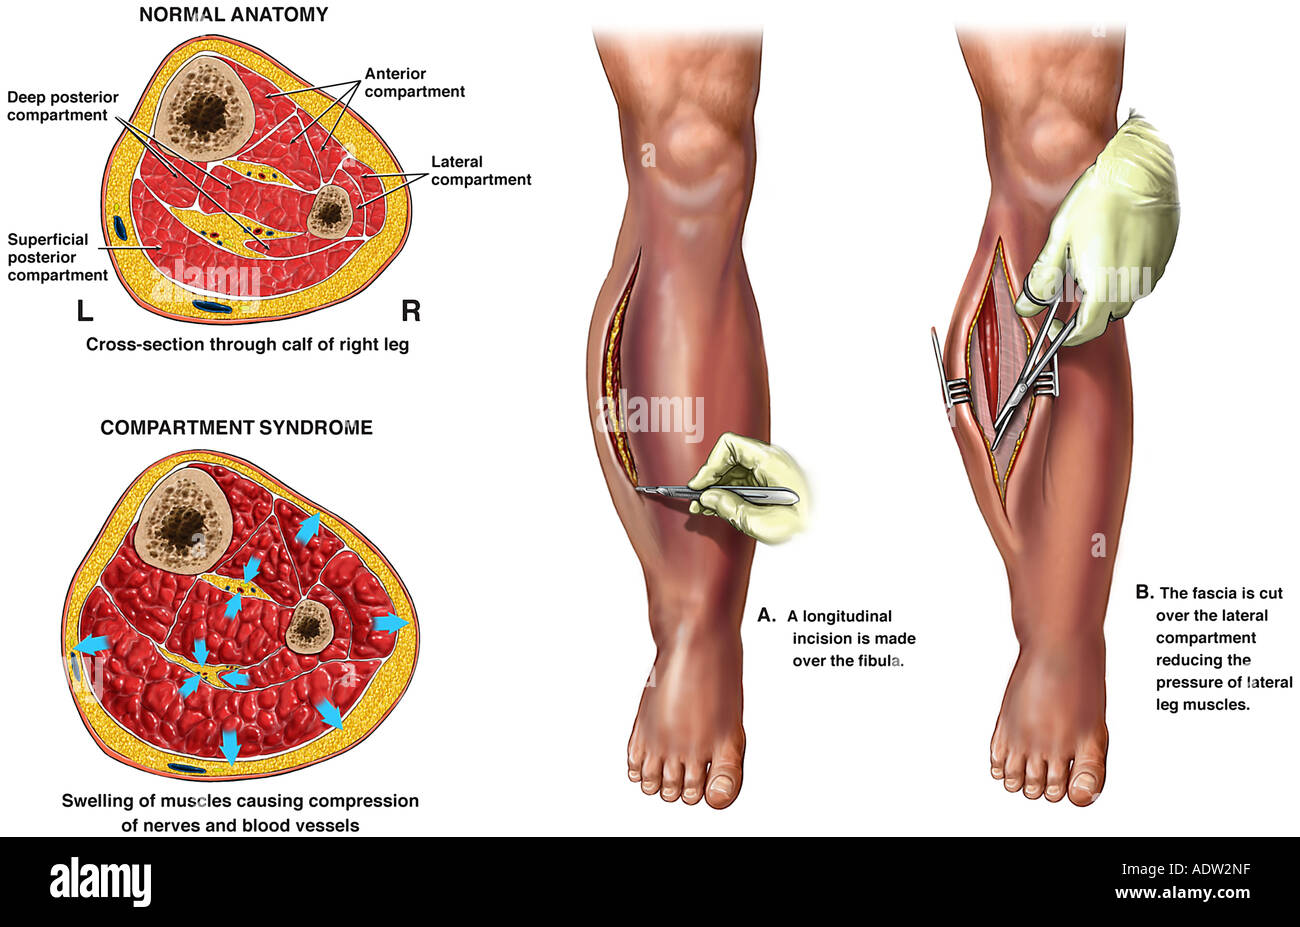 Compartment Syndrome with Fasciotomy Surgery Stock Photo: 7711454 ...